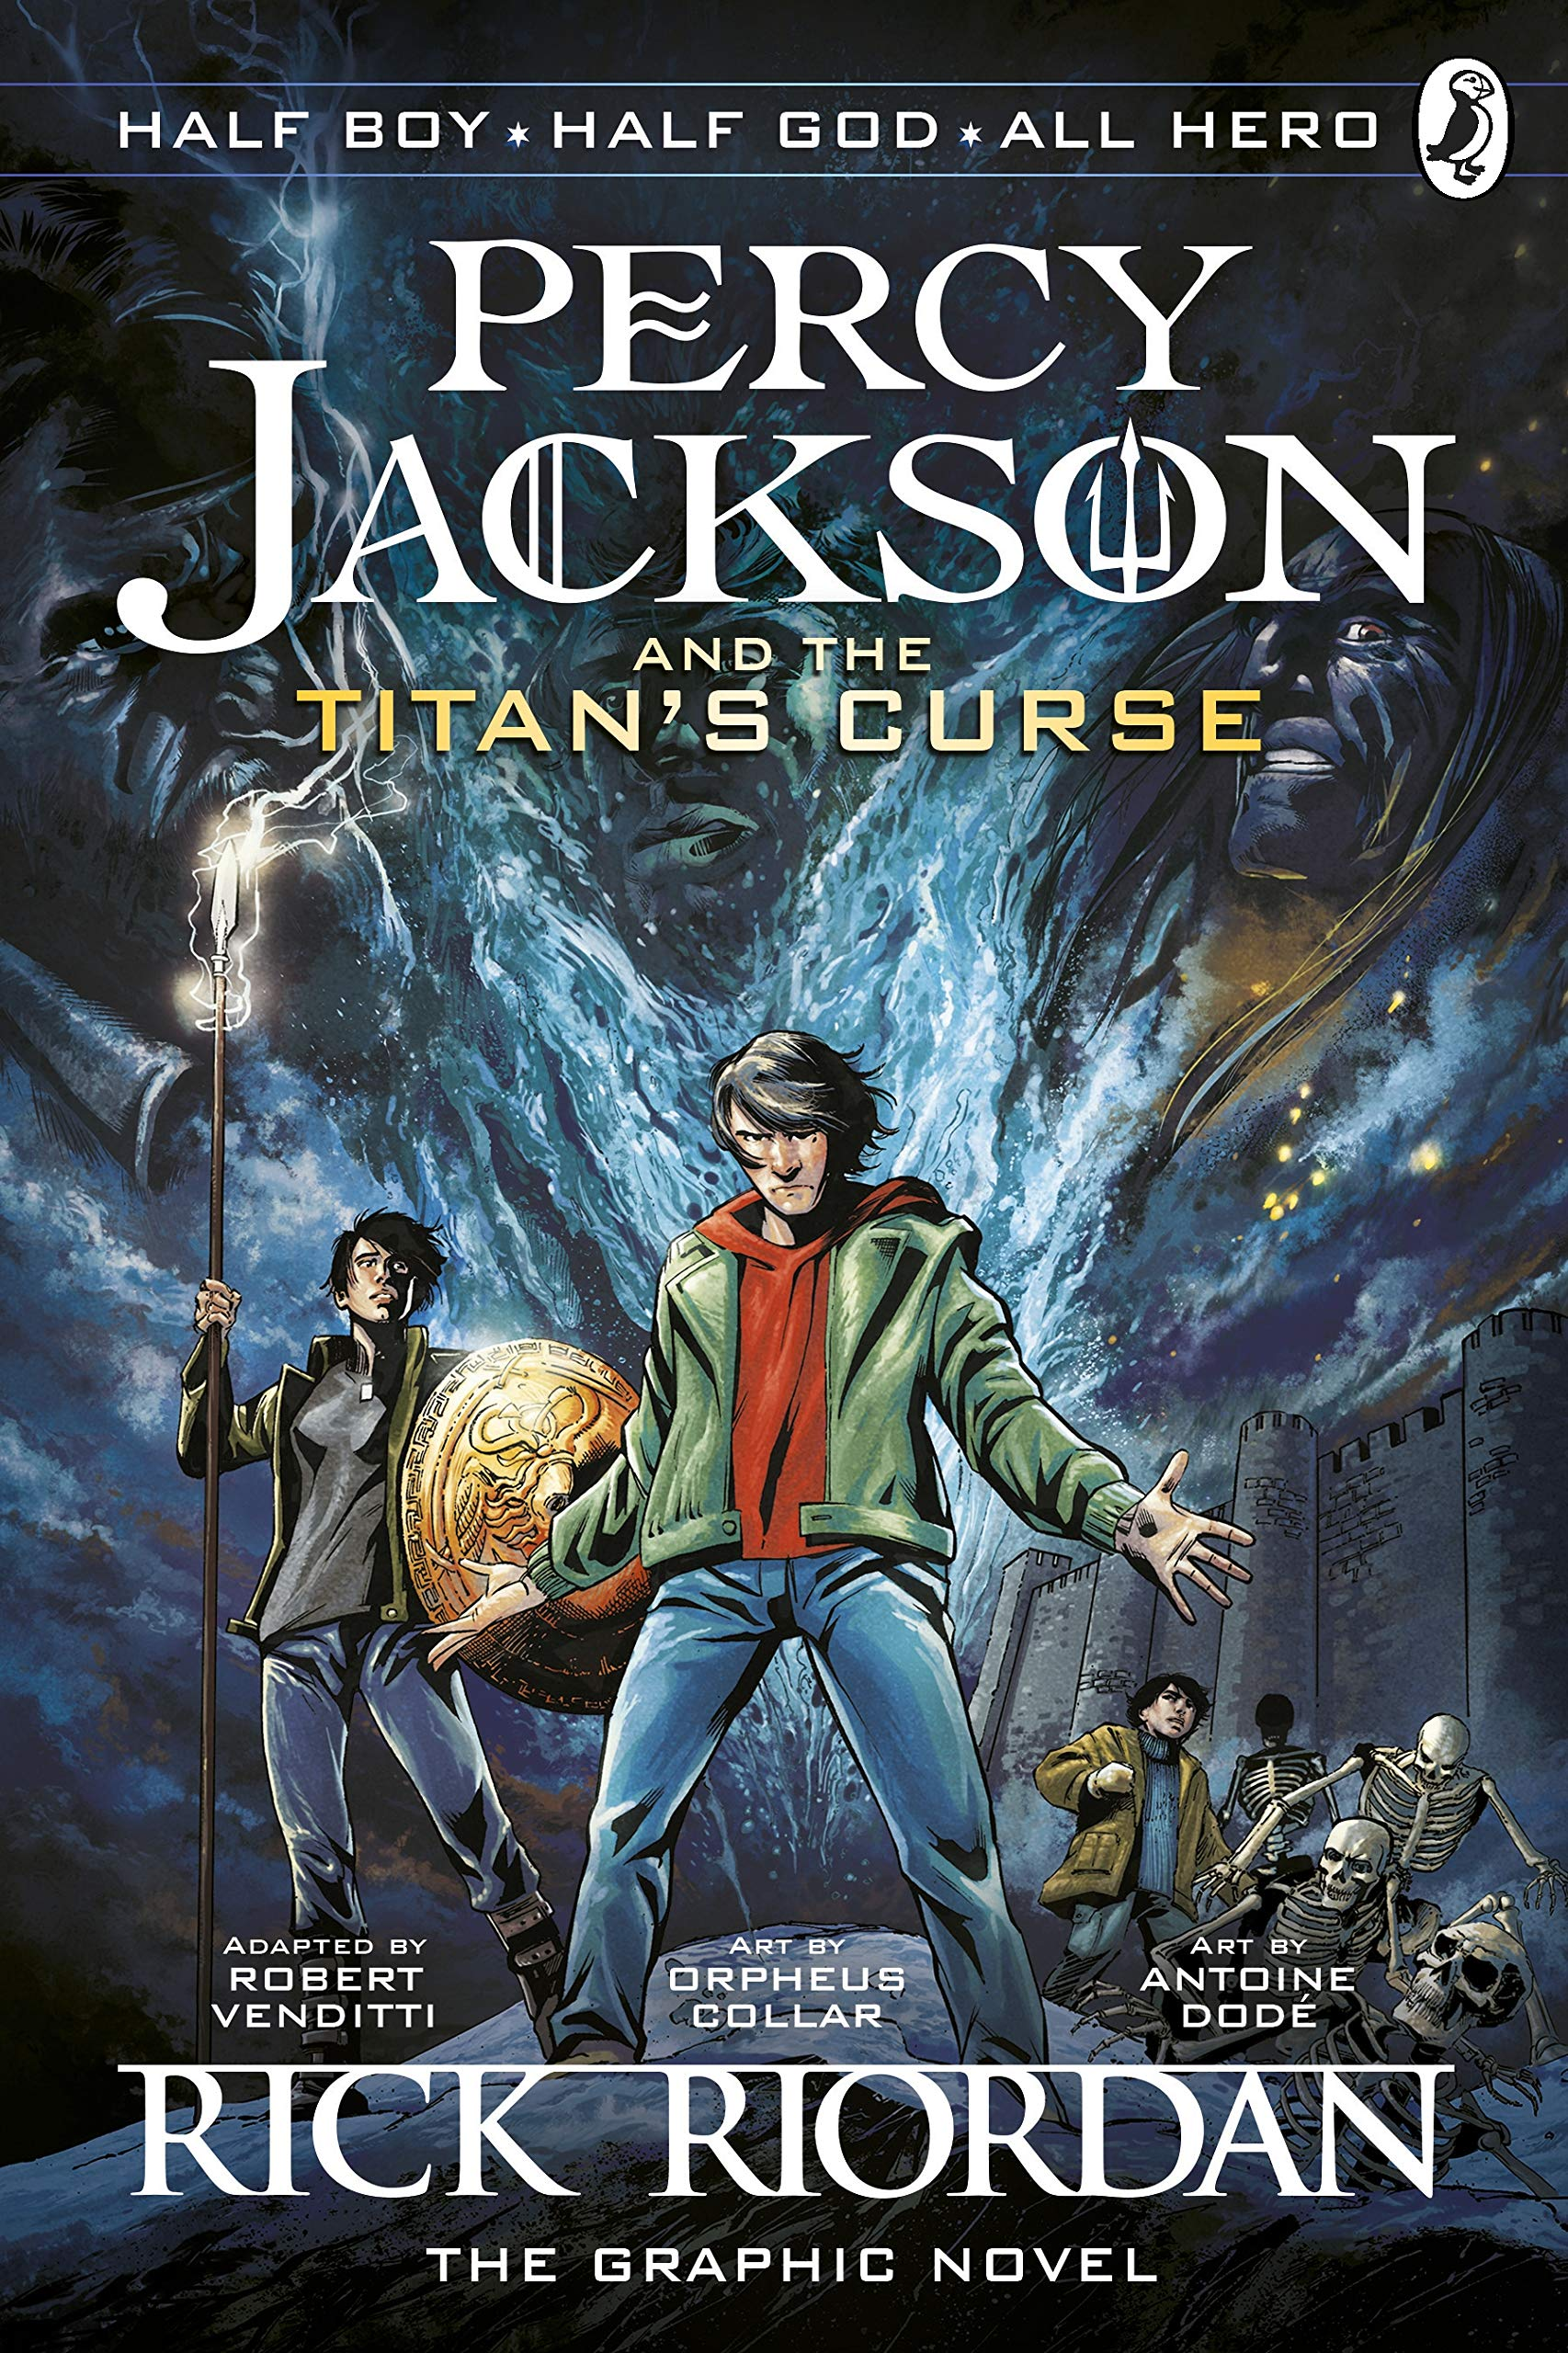 Image result for the titan's curse graphic novel book cover